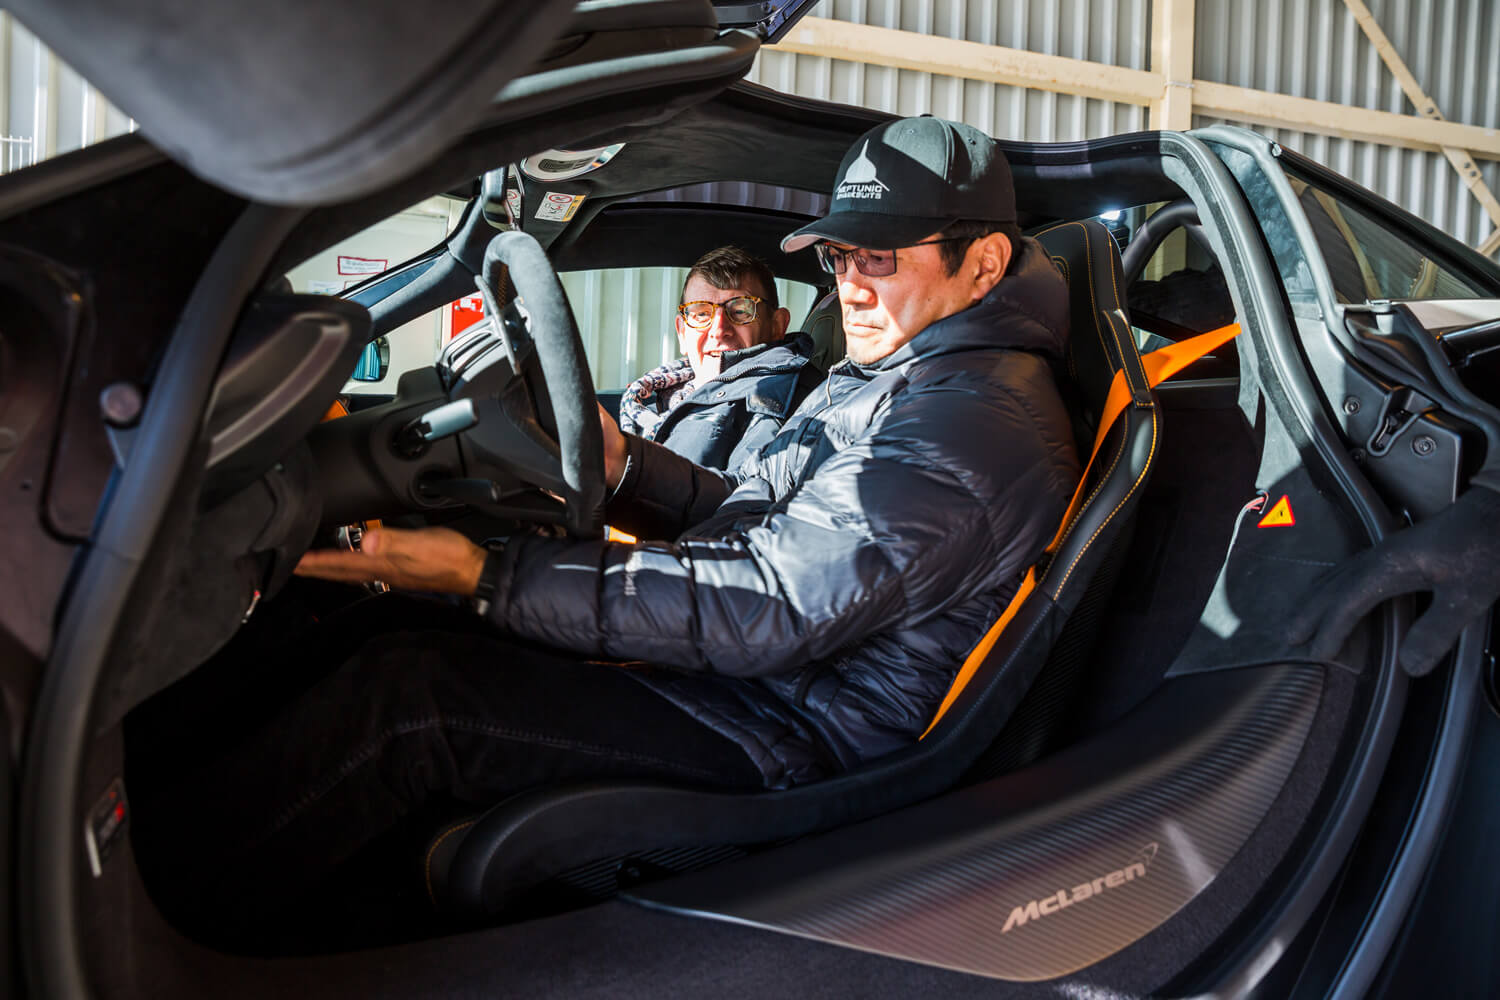 Martin Darbyshire and Ken Okuyama in the McLaren 720S